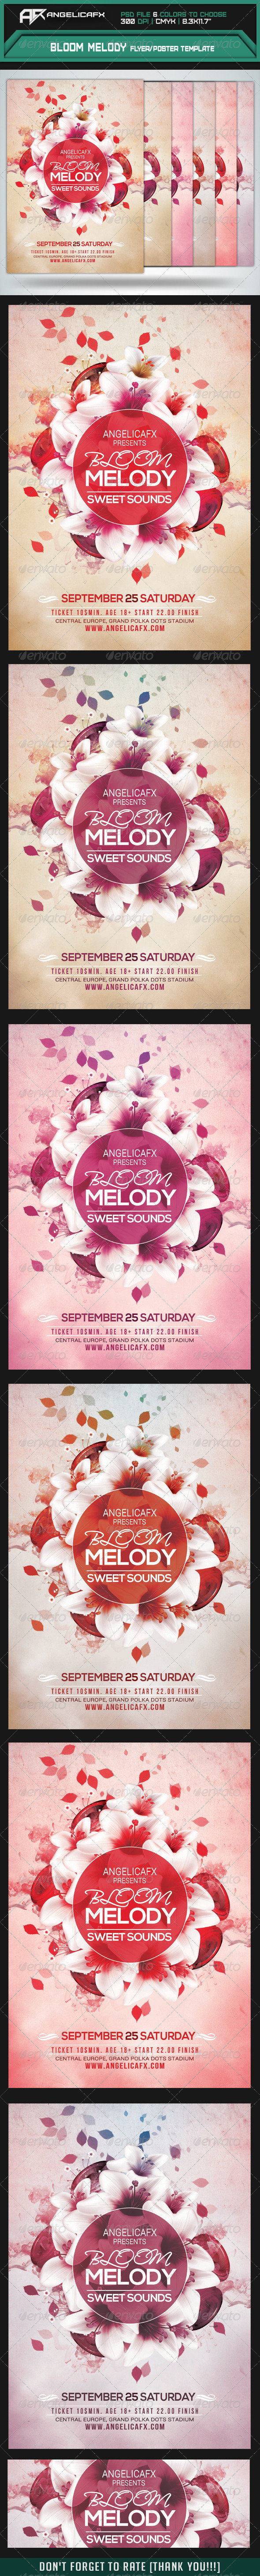 GraphicRiver Bloom Melody Flyer Poster Template 8413011